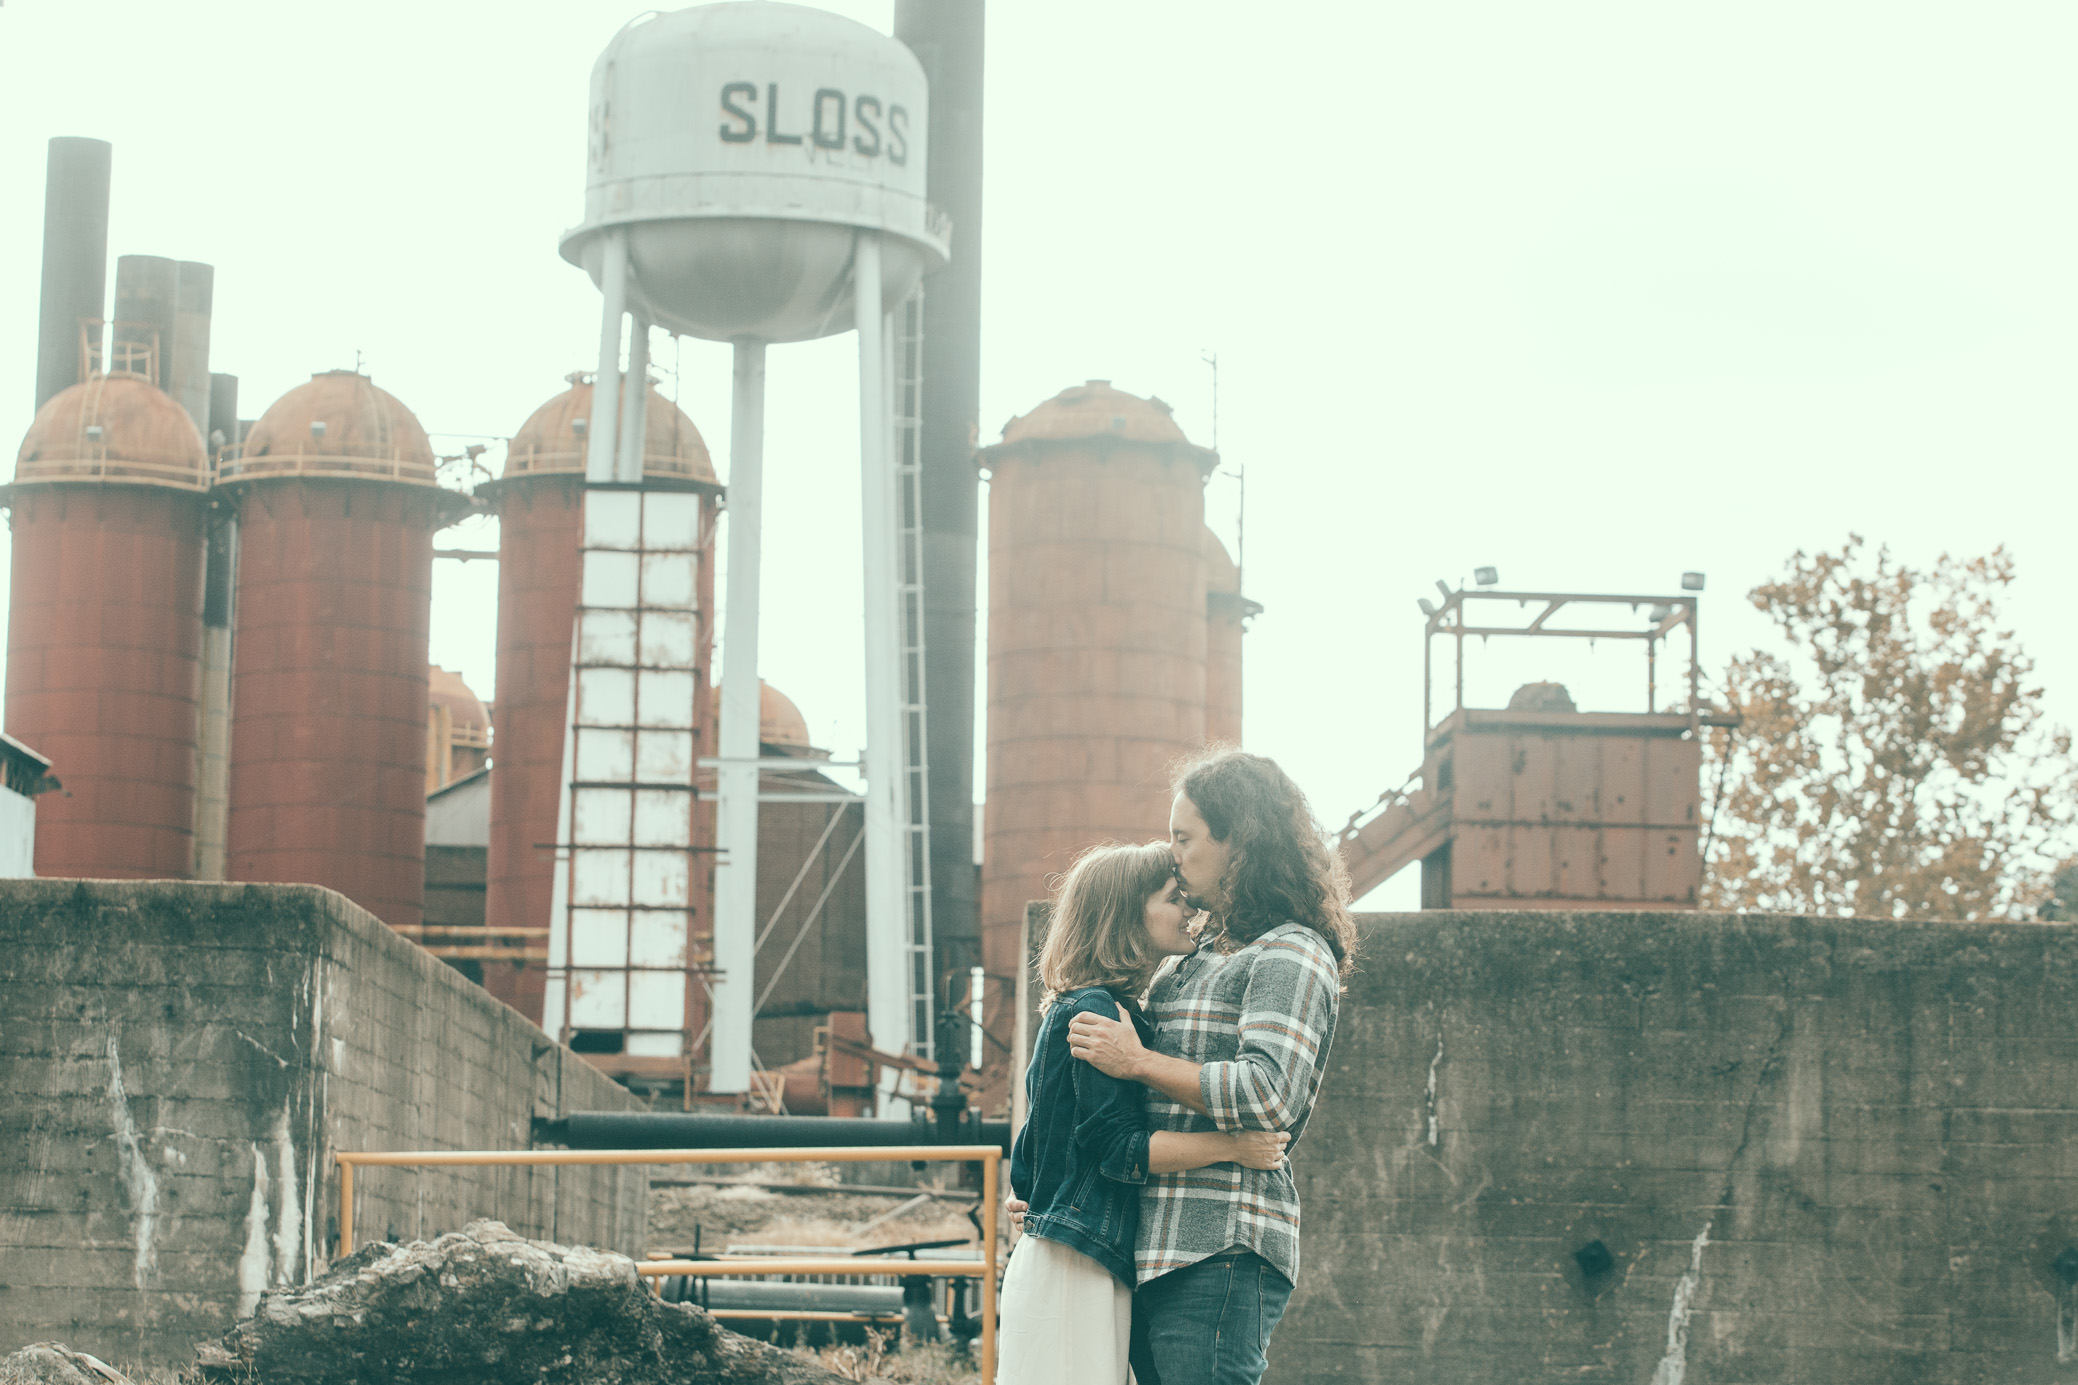 Engagement photography at Sloss Furnaces National Historic Landmark in Birmingham, Alabama by David A. Smith of DSmithImages Wedding Photography, Portraits, and Events.